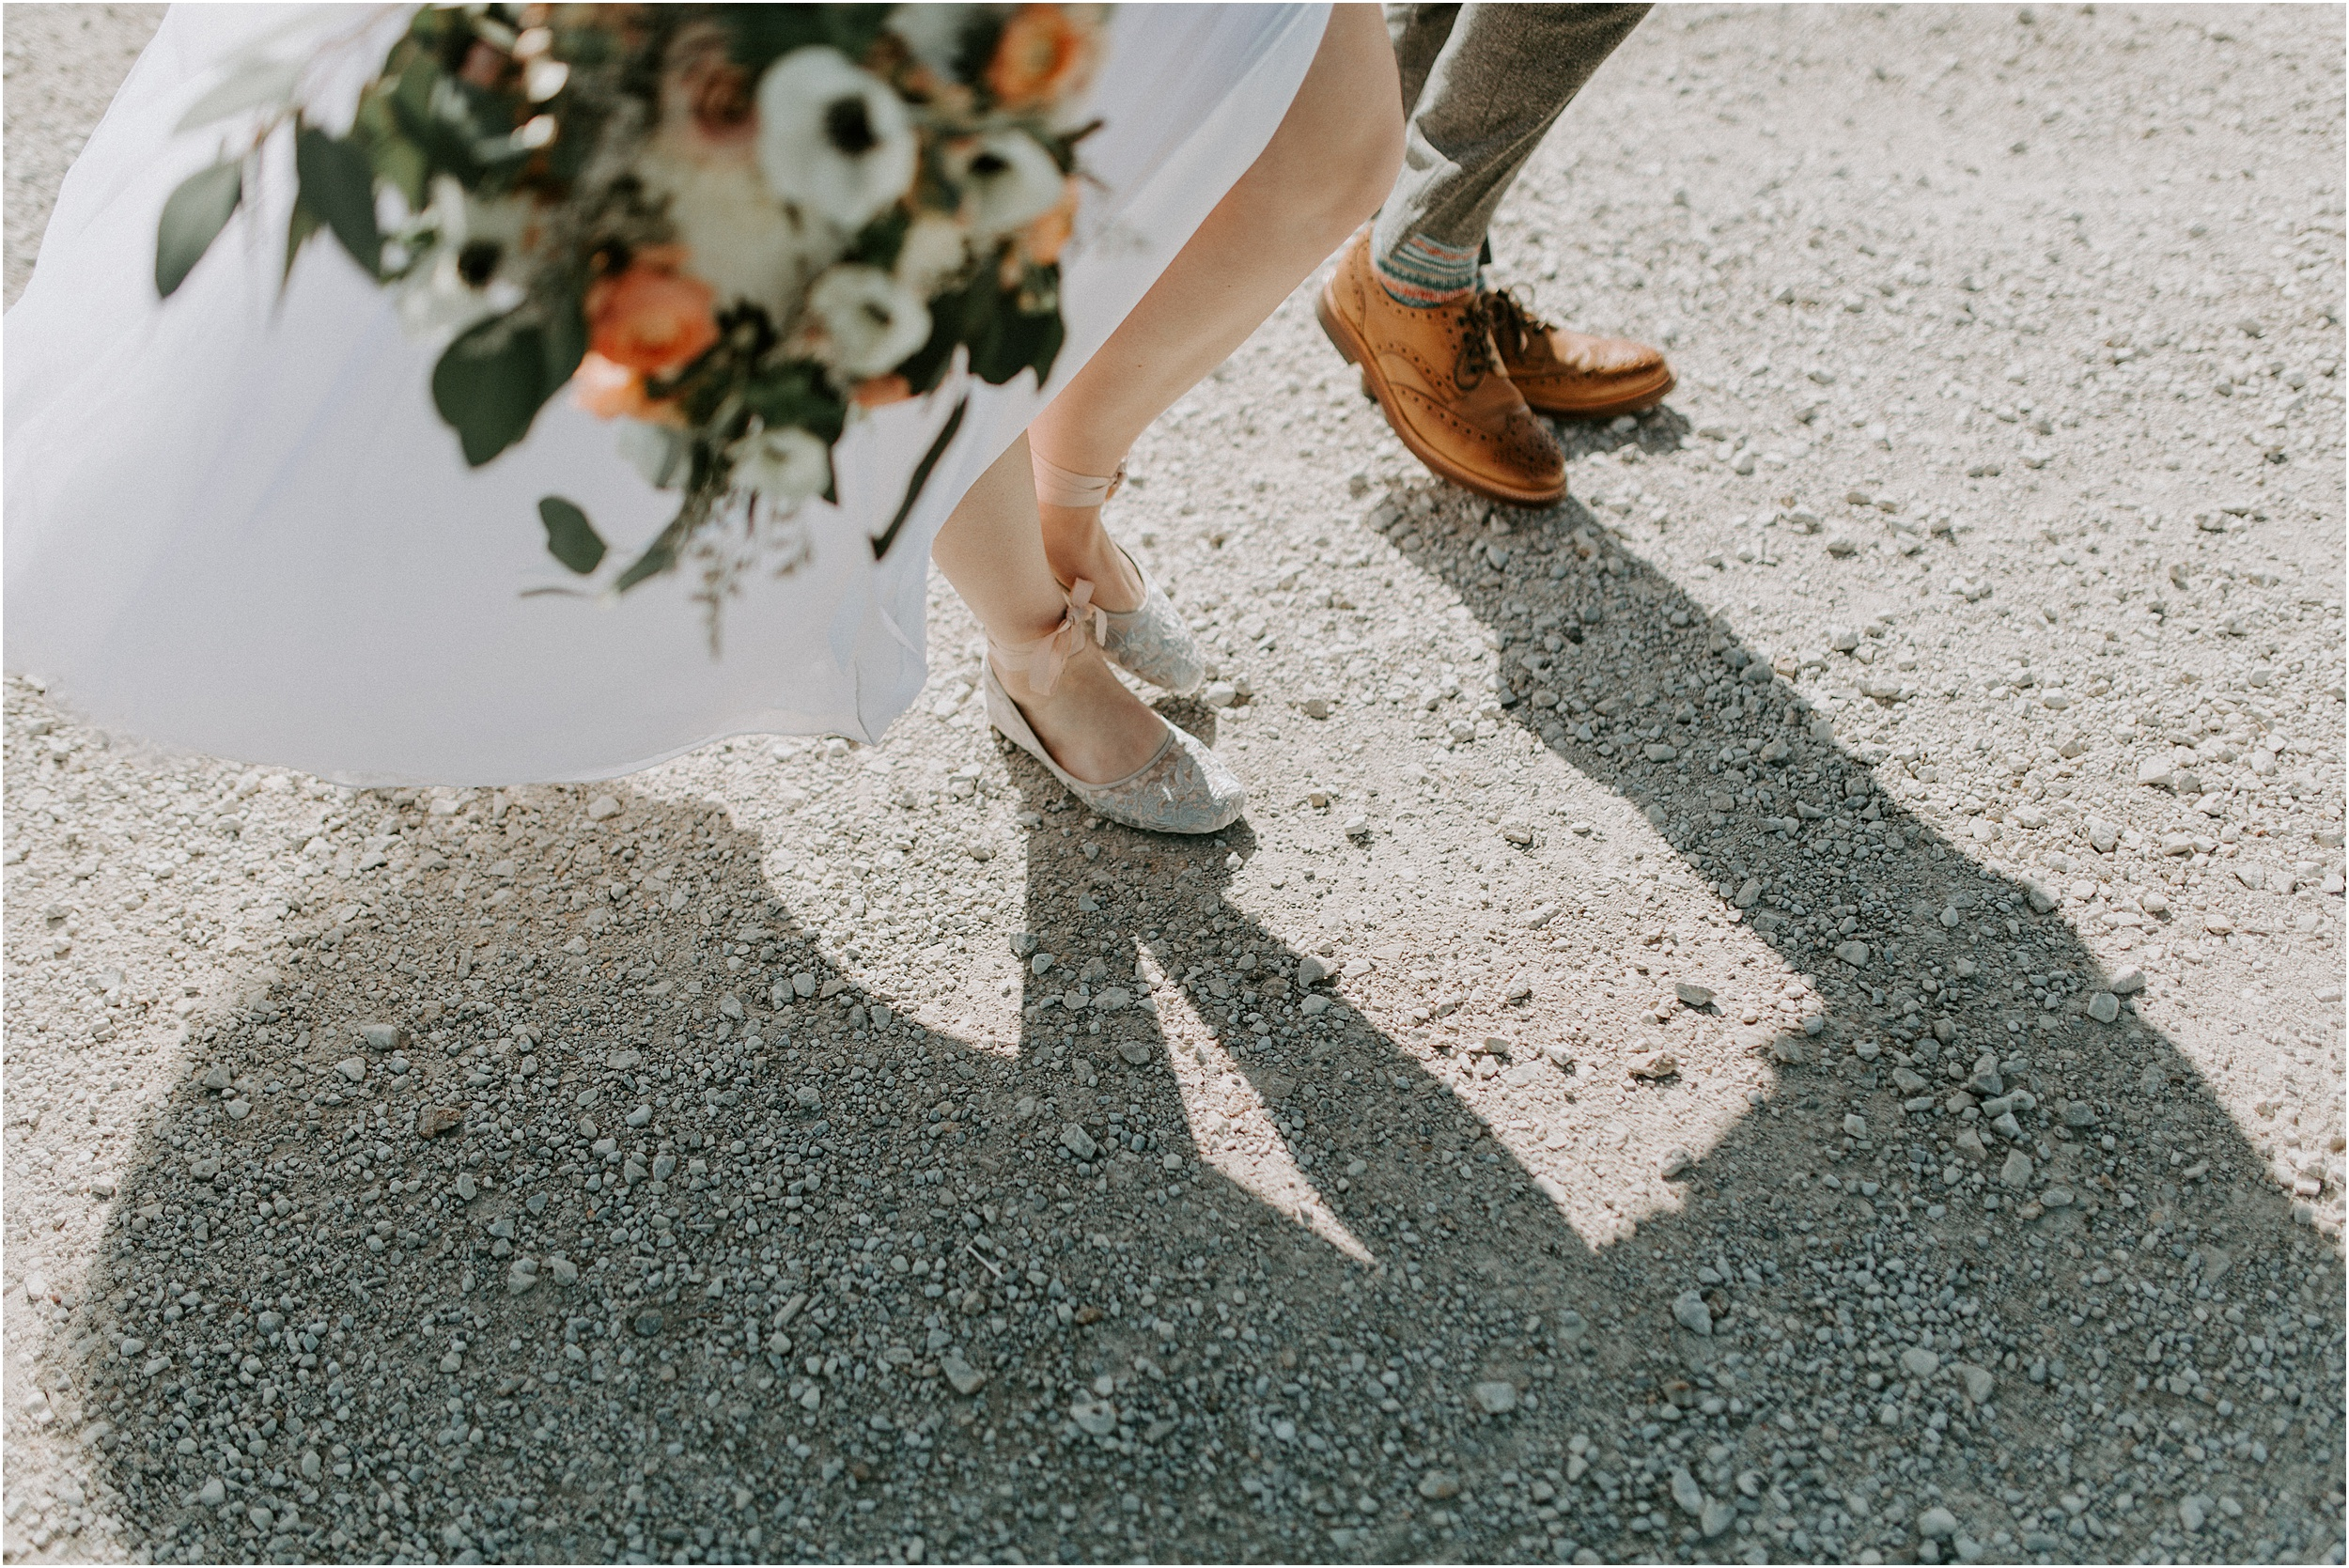 willow_creek_farm_champaign_wedding_wright_photographs_street_0430.JPG